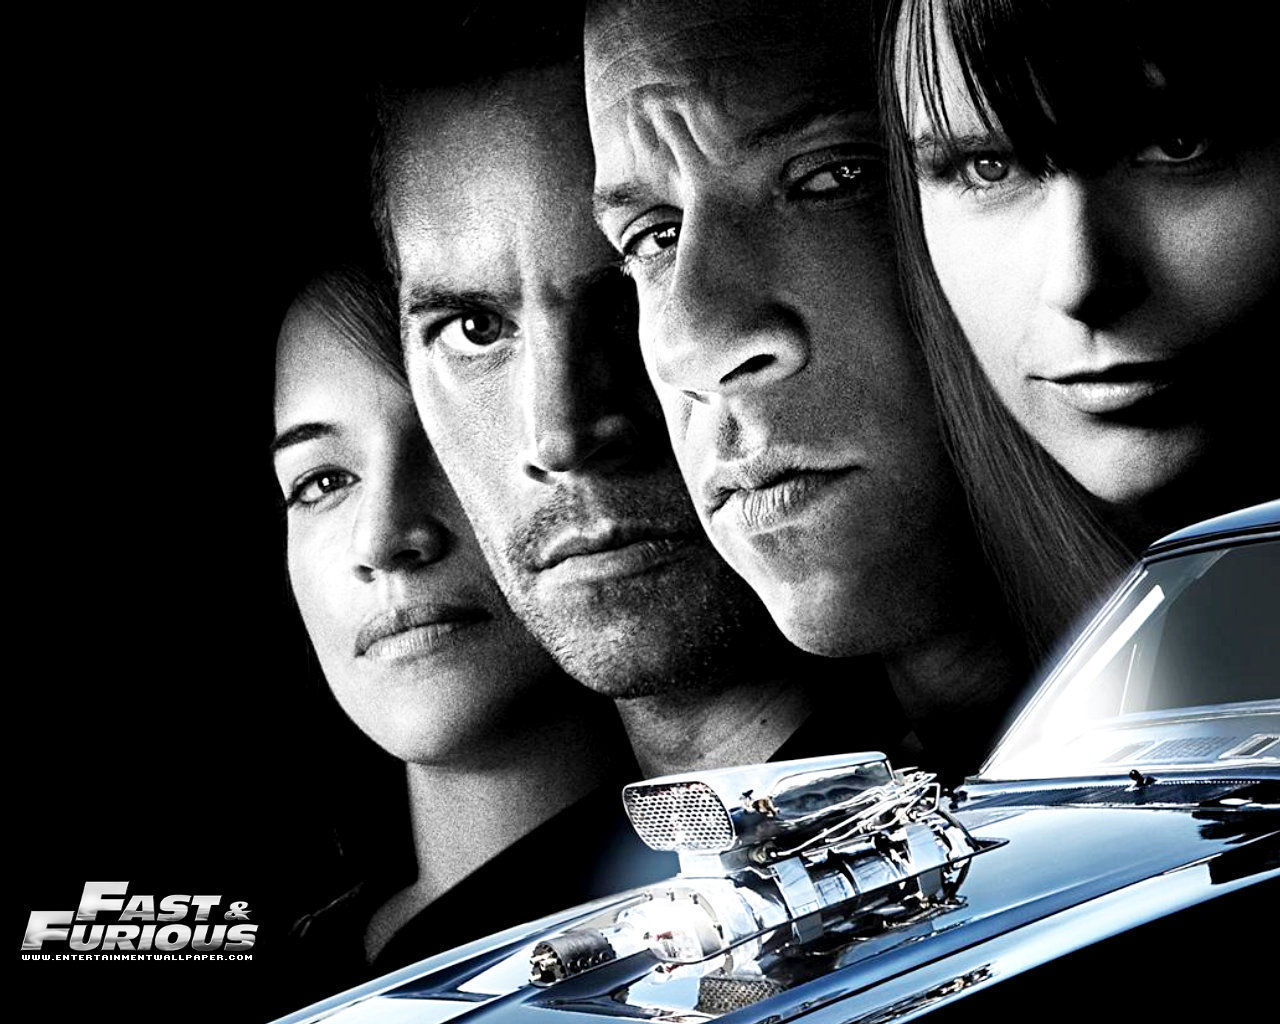 Fast And The Furious 7 Wallpaper: Paul Walker Furious 7 Wallpaper